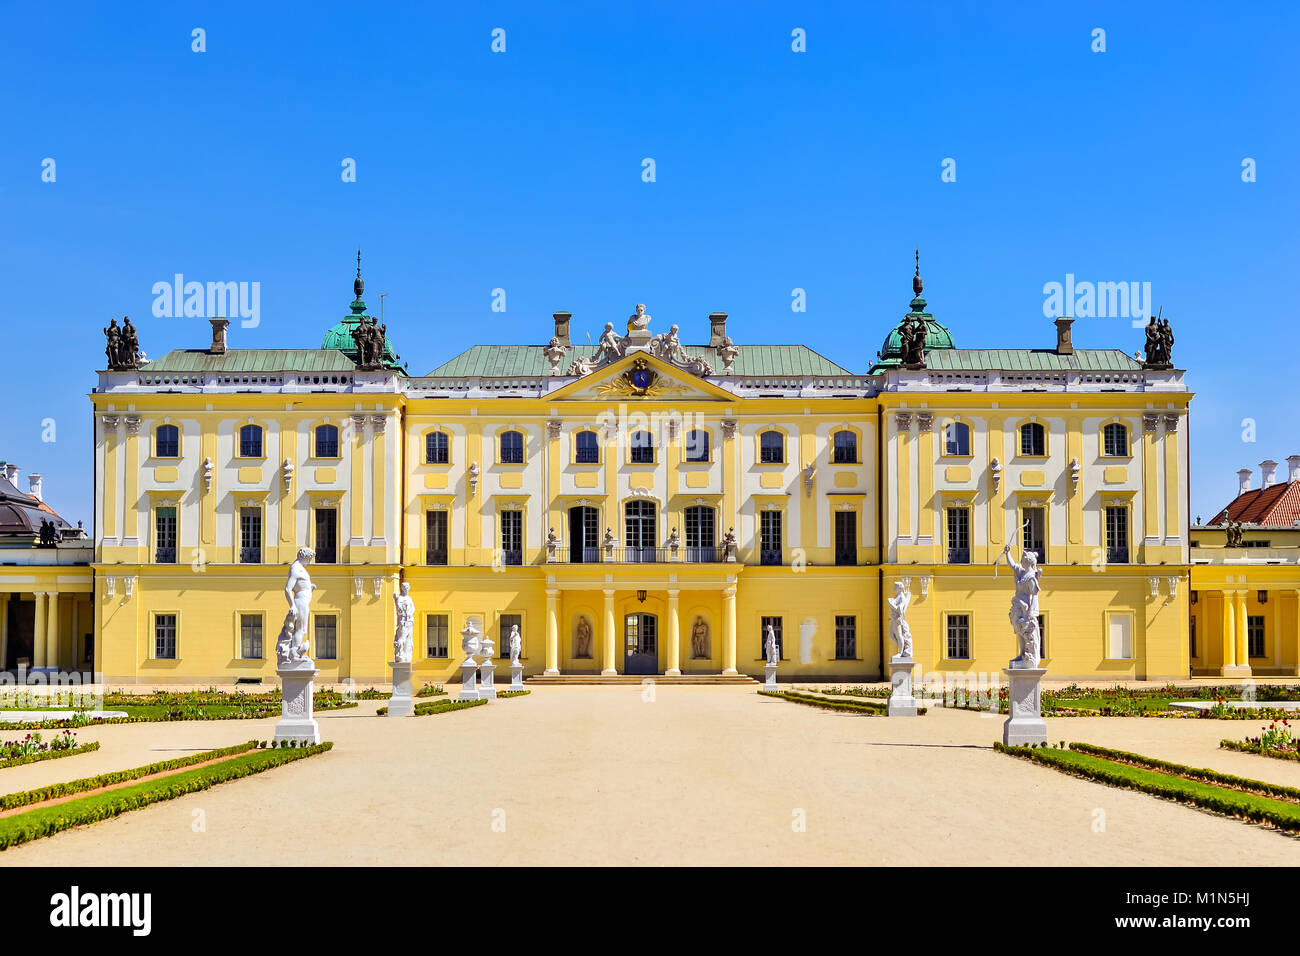 Branicki Palace and Medical University of Bialystok Clinical Hospitals in Poland. Architecture of baroque mansions - Stock Image